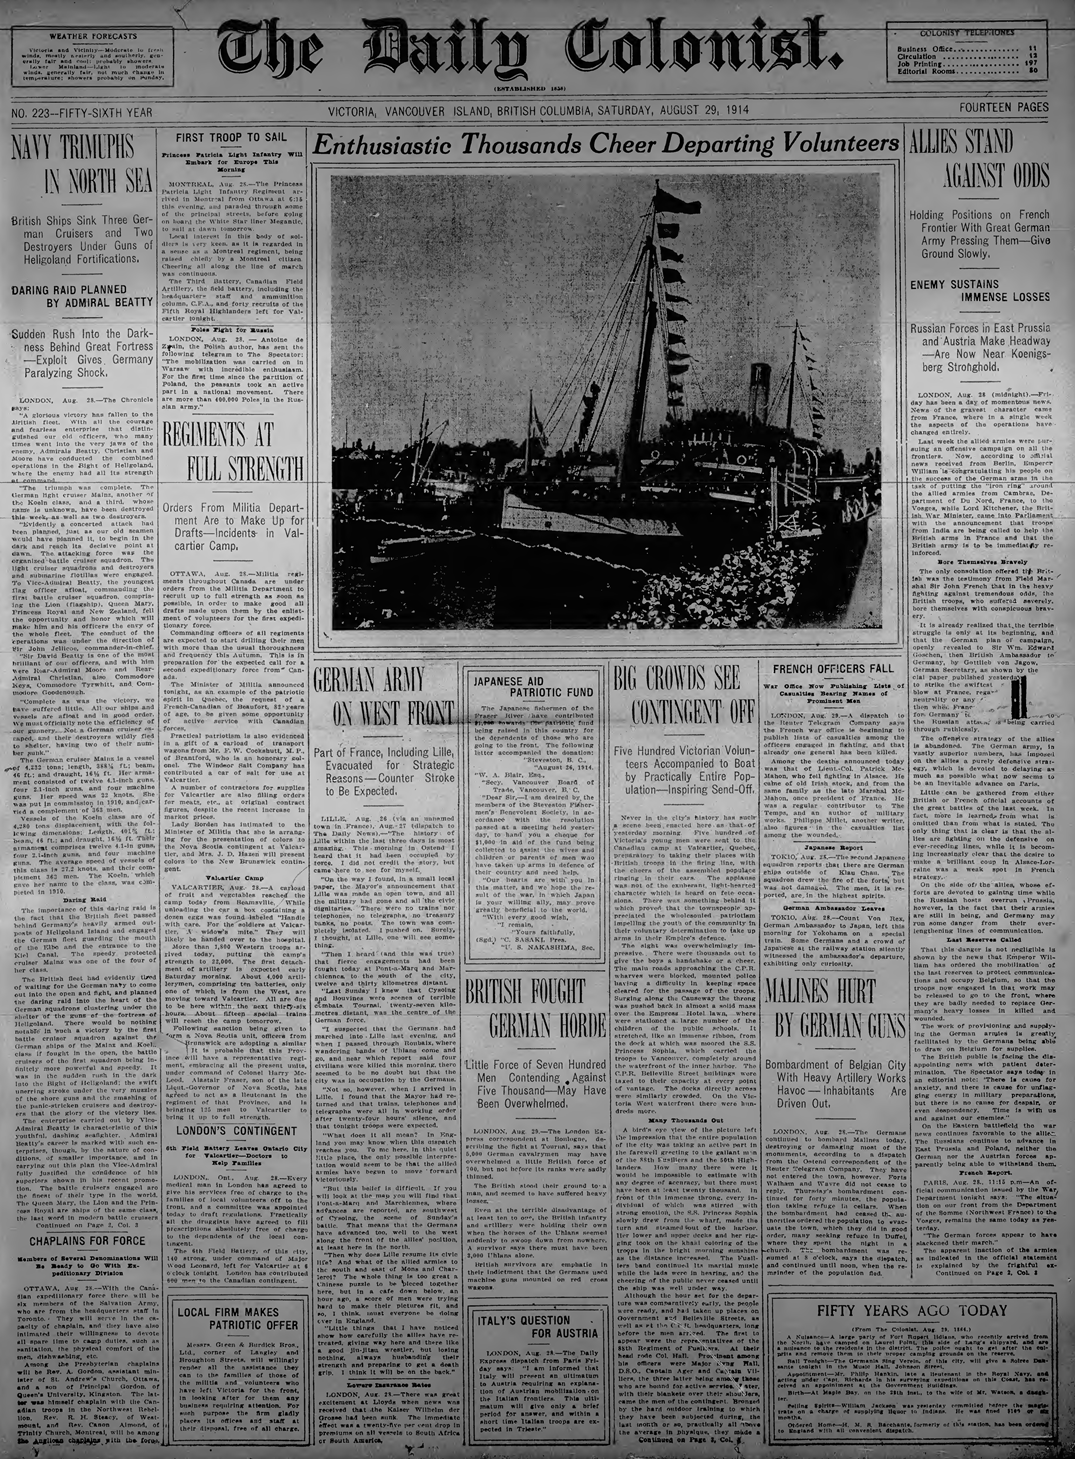 Front page, Daily Colonist, August 29, 1914.